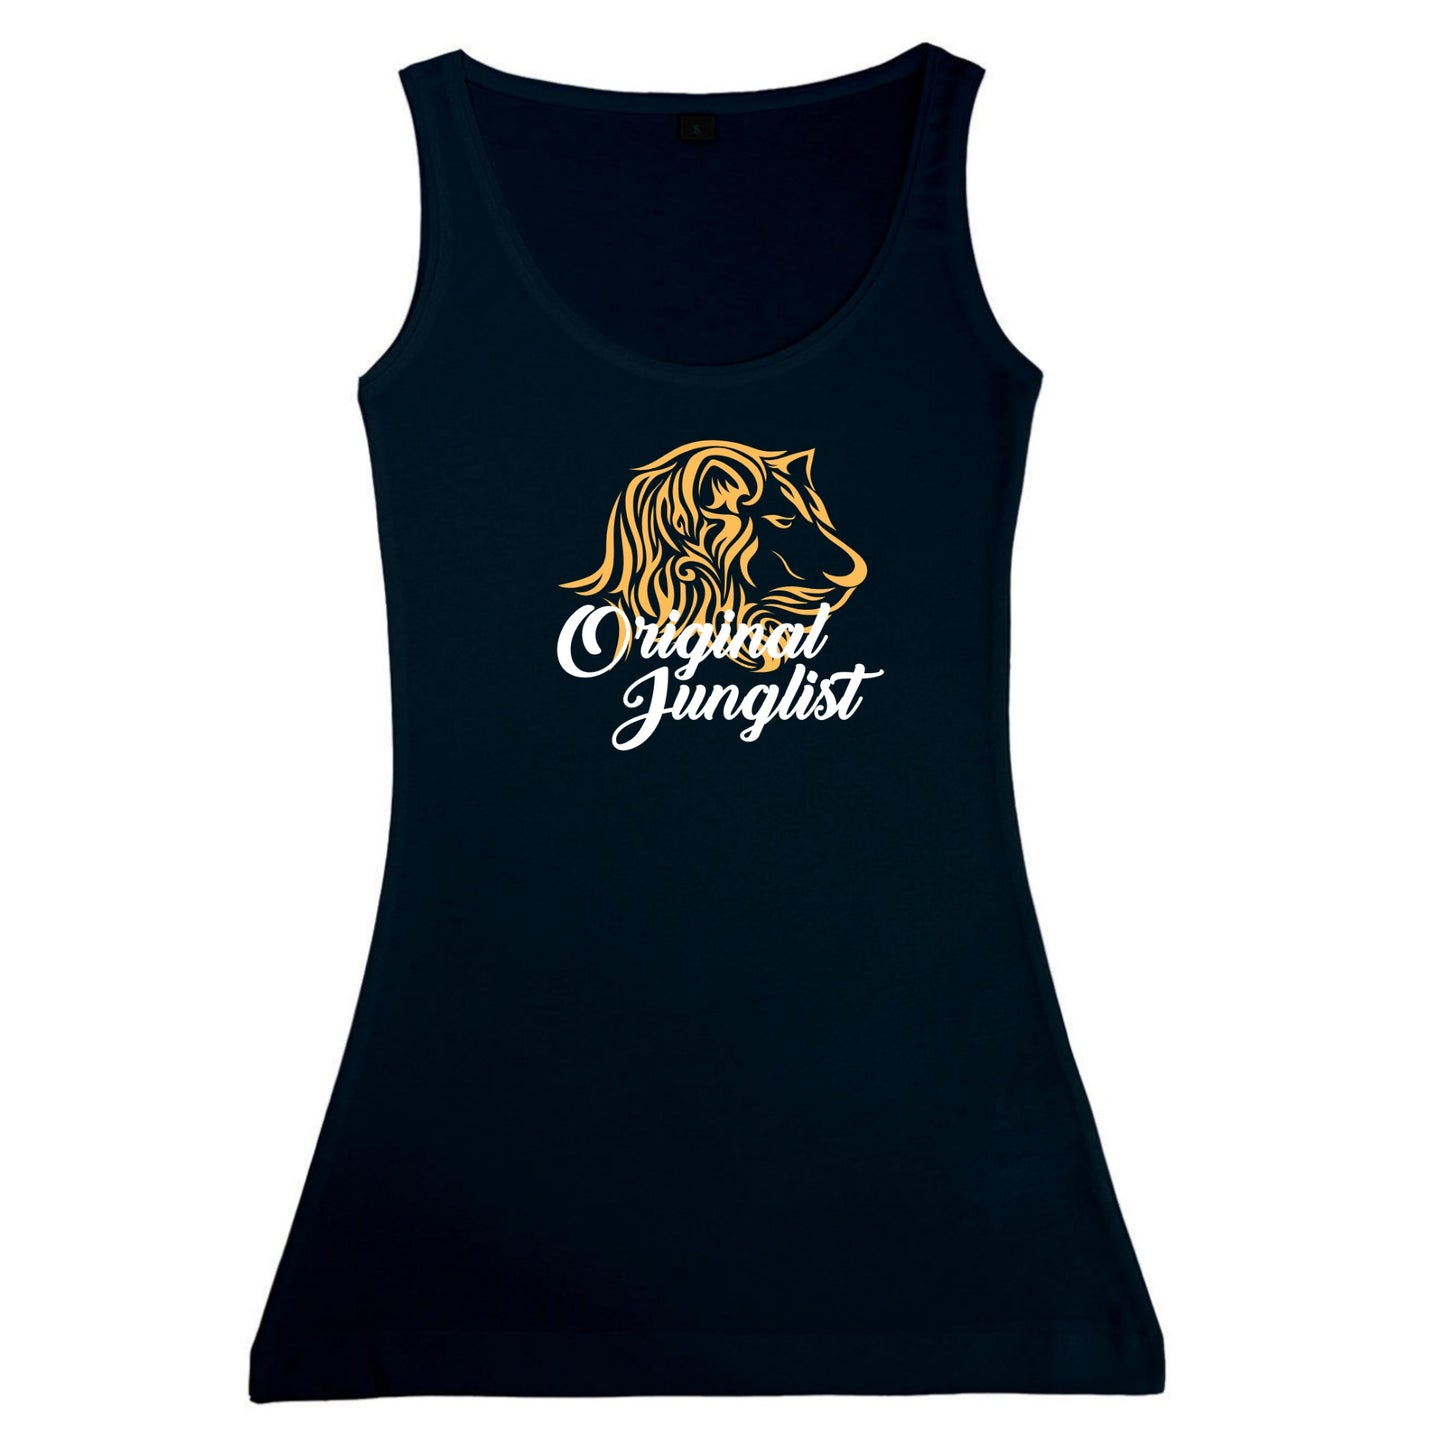 Original Junglist Lion Vest Ladies Drum and Bass Tshirt